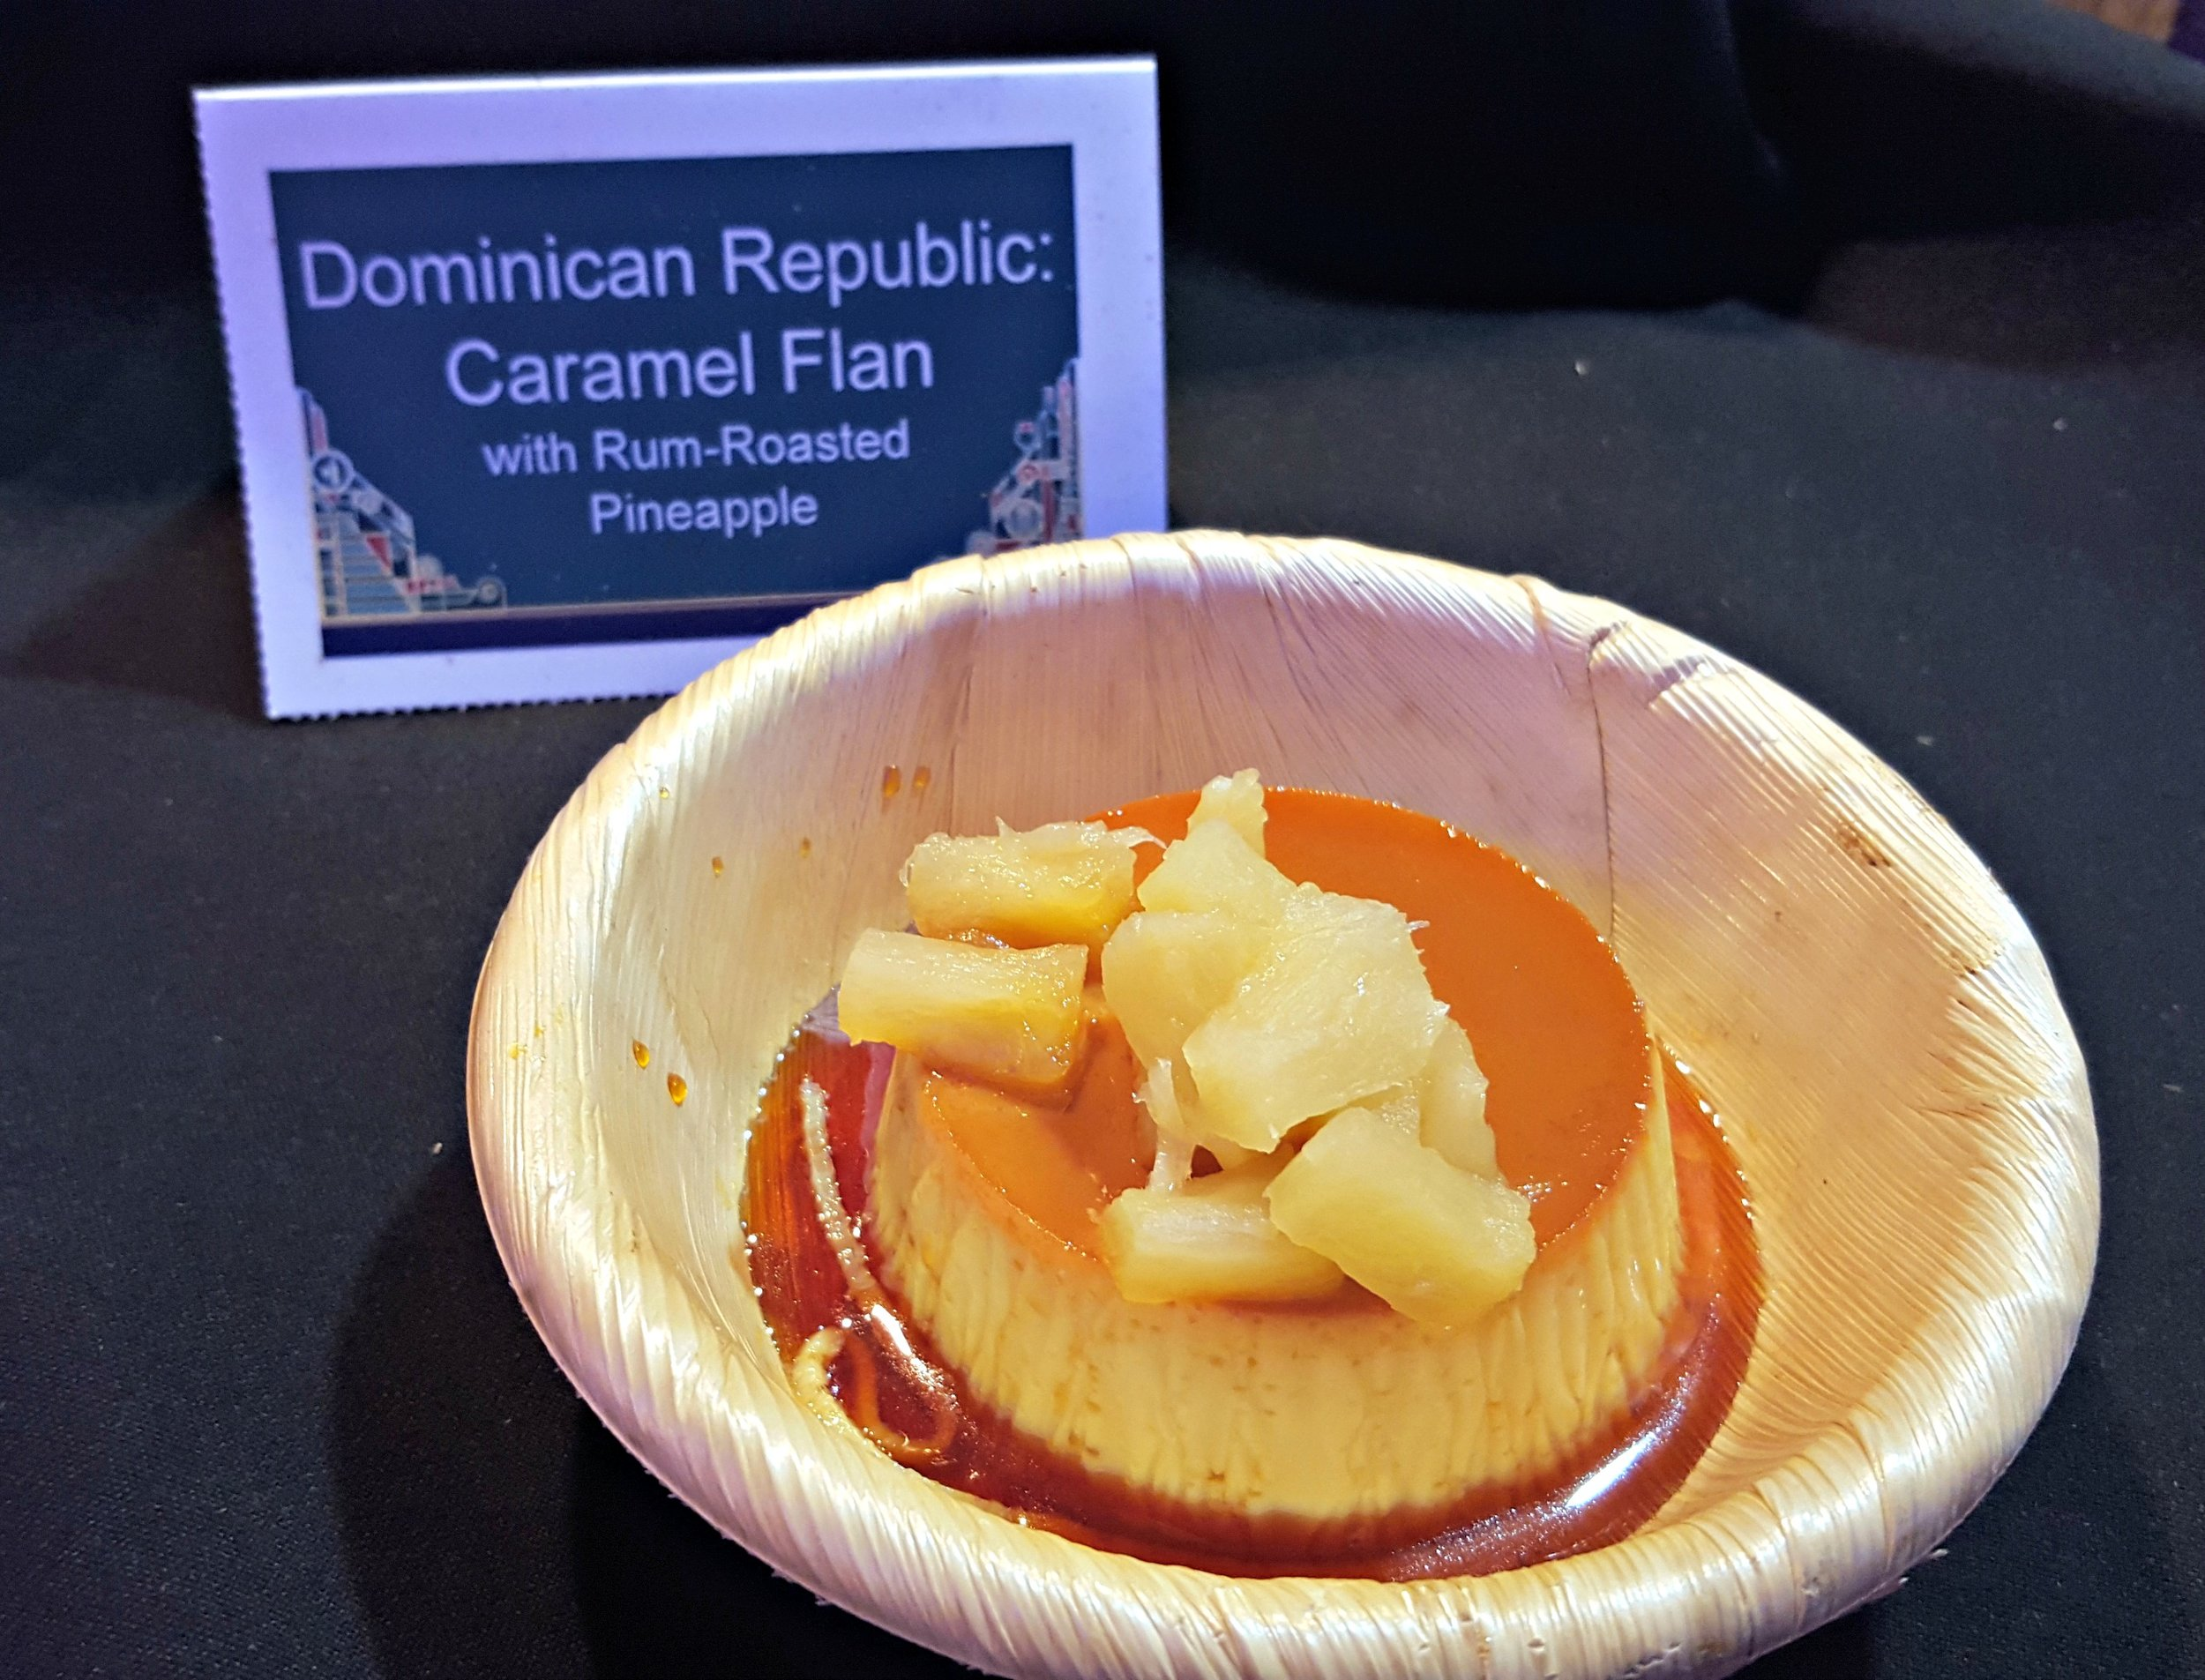 Caramel Flan with Rum Roasted Pineapples